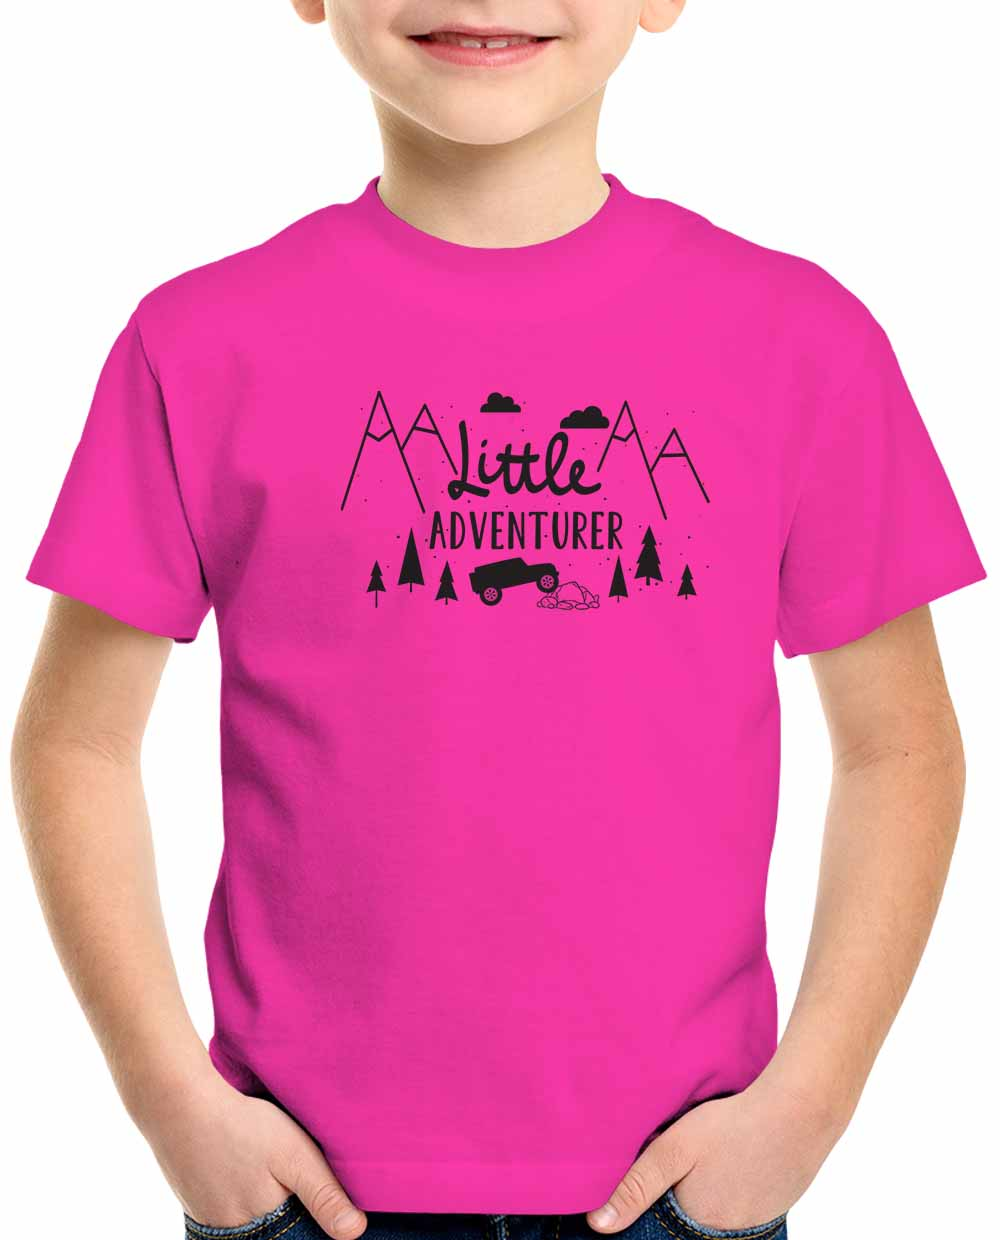 littleadventurer-jeep-kids-tee-shirt-ashe-gray-girls-pink